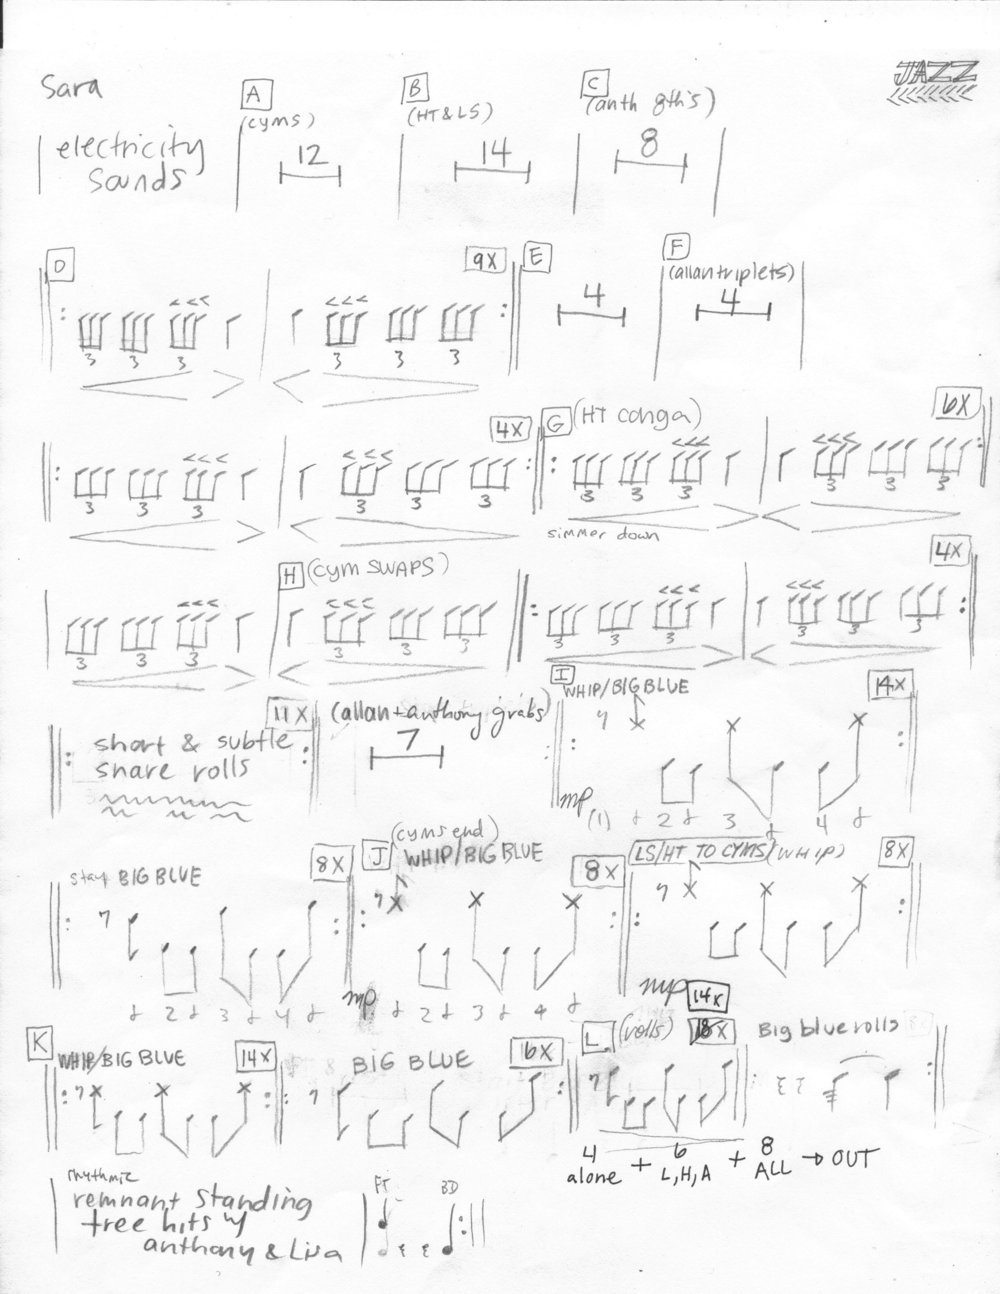 Jazz (Timber Sale) - sheet music for one percussion player. For Environmental Impact Statement. 2015.